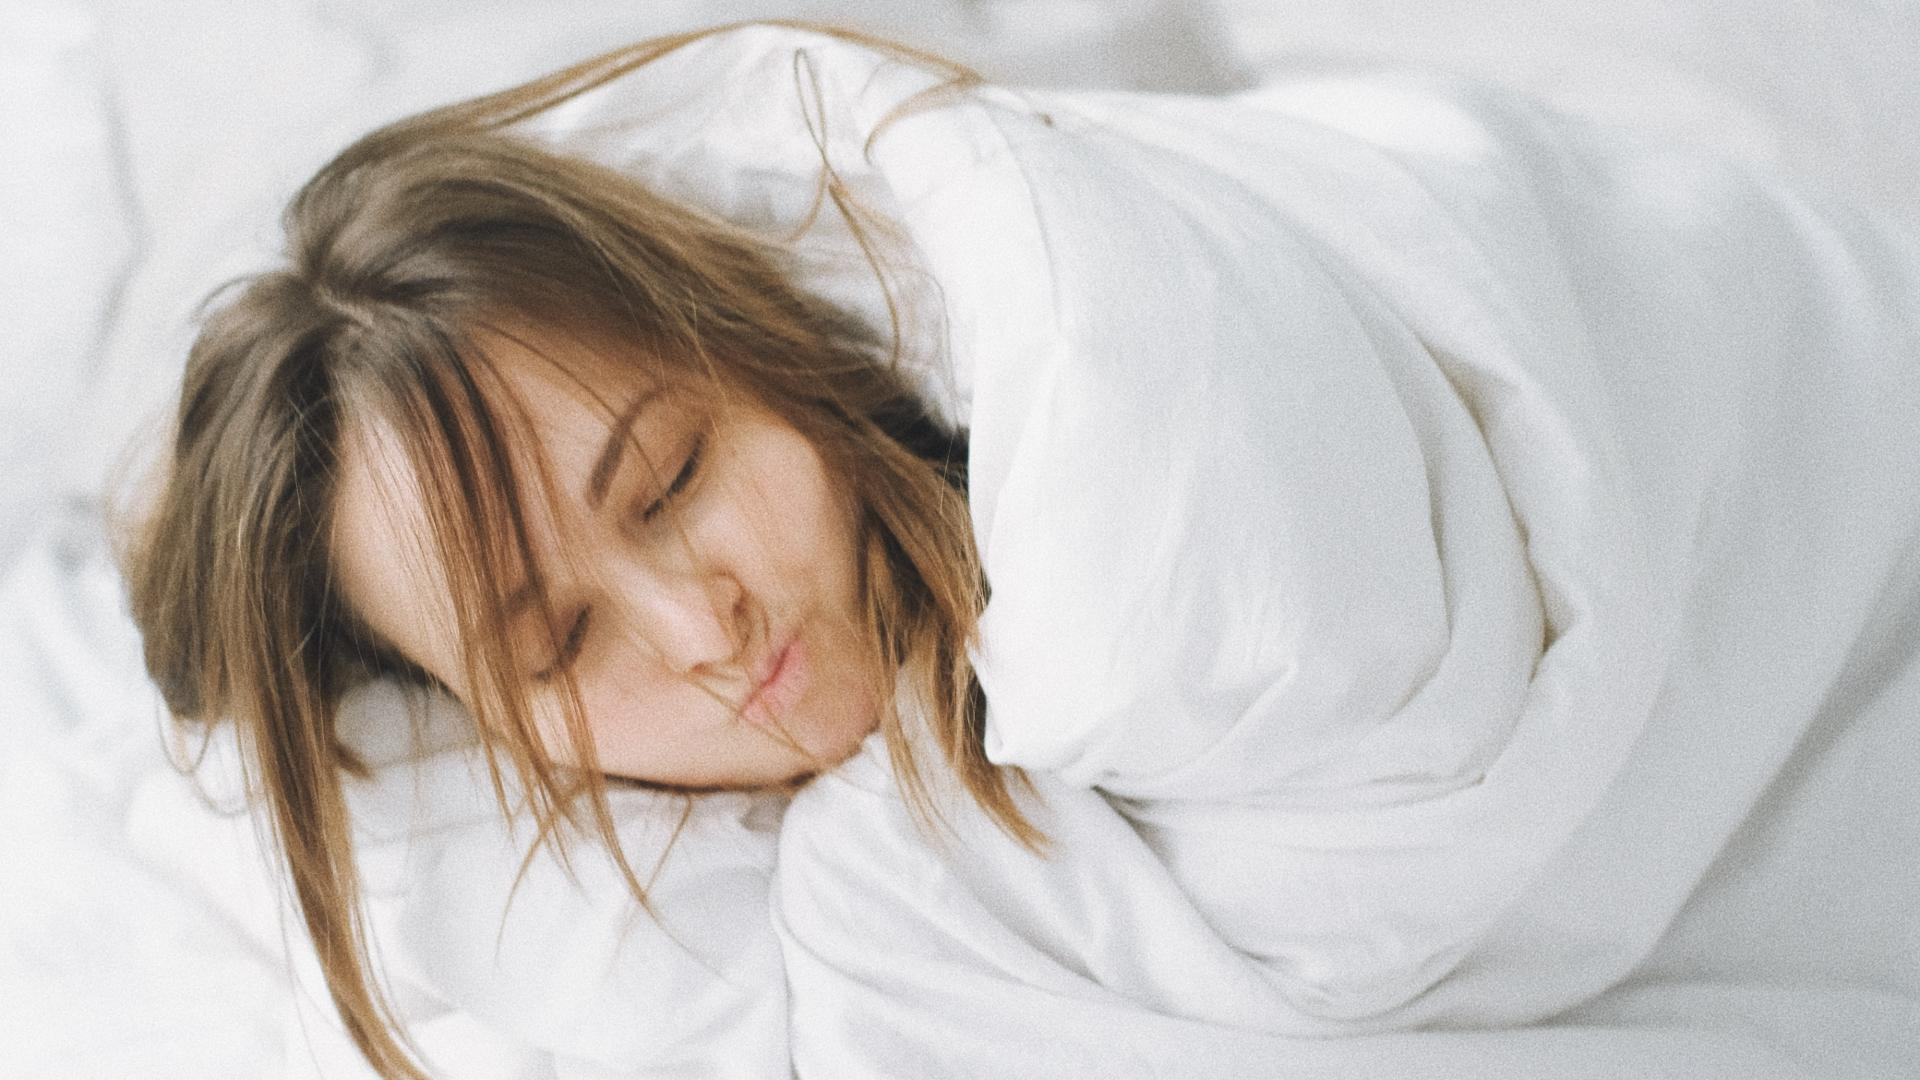 Woman covered in sheets getting beauty sleep